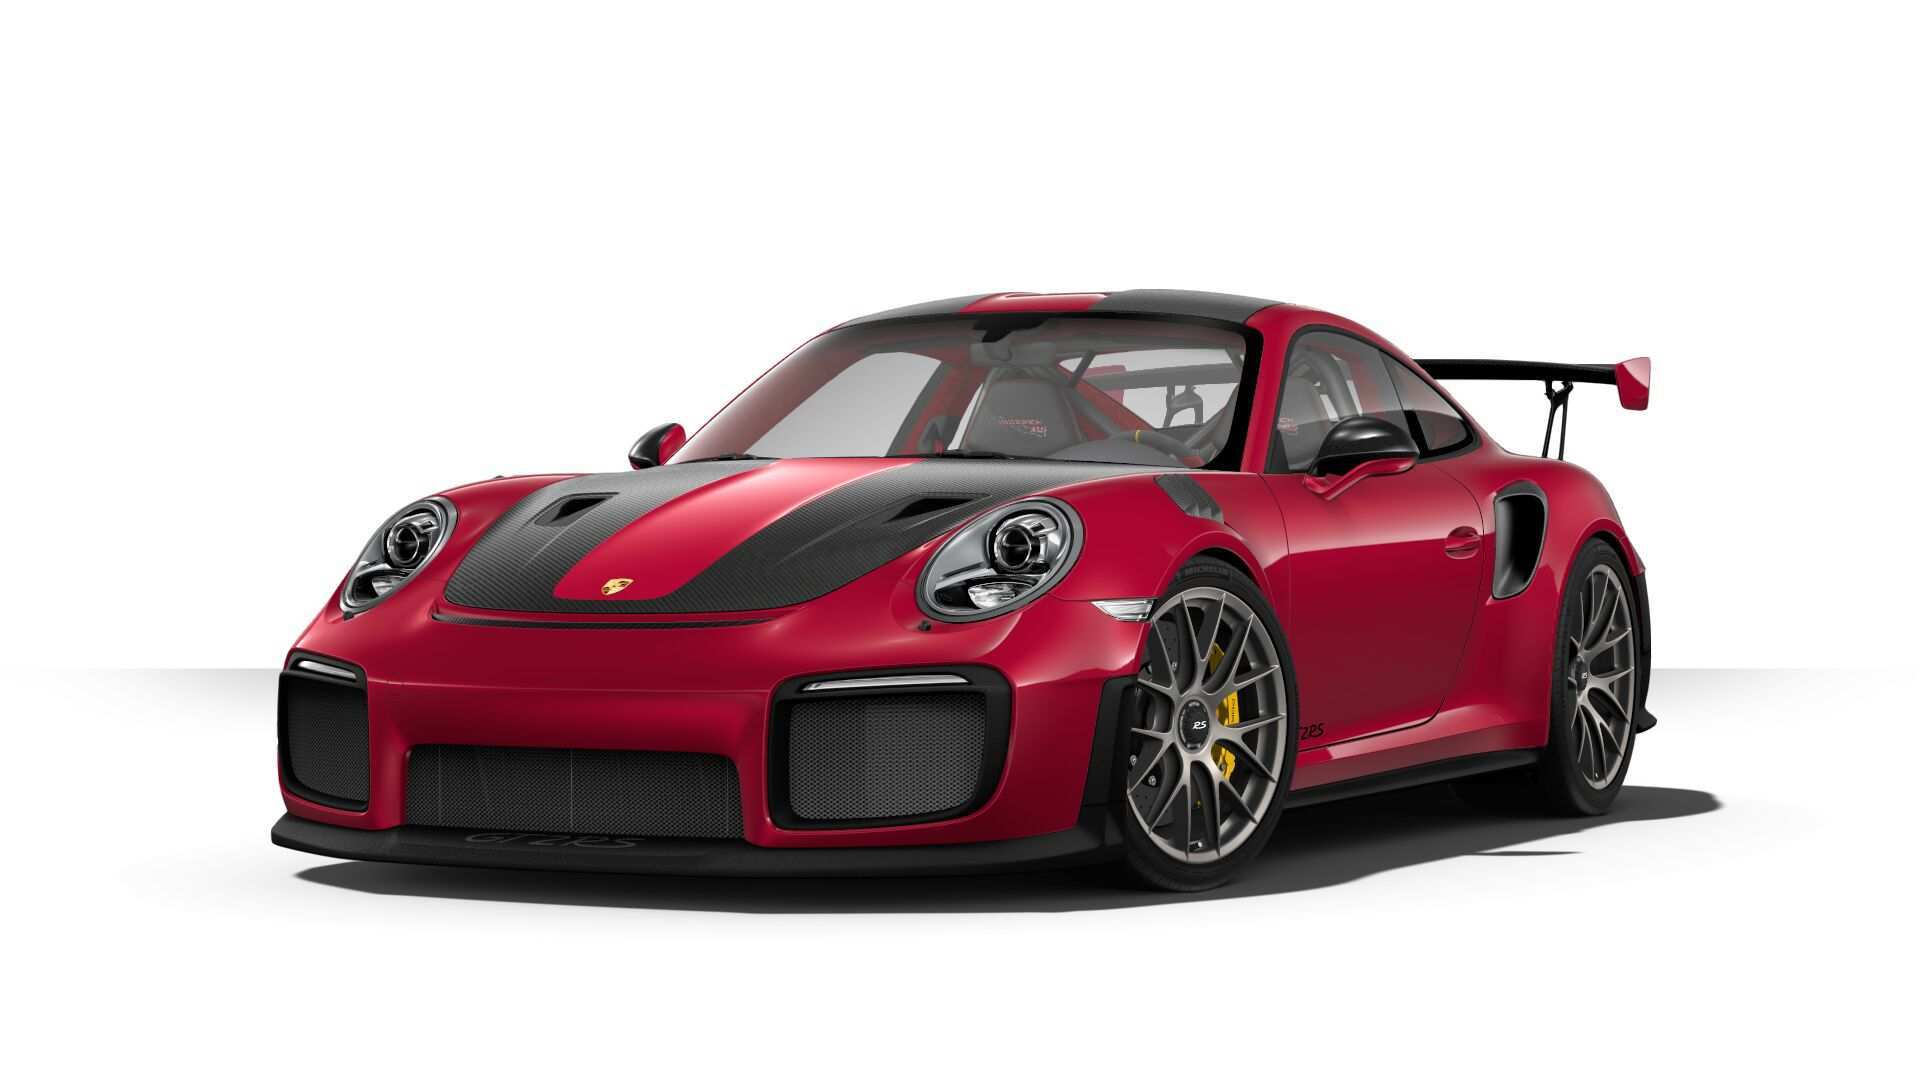 41 Best Review 2019 Porsche Gt2 Rs For Sale Redesign and Concept with 2019 Porsche Gt2 Rs For Sale